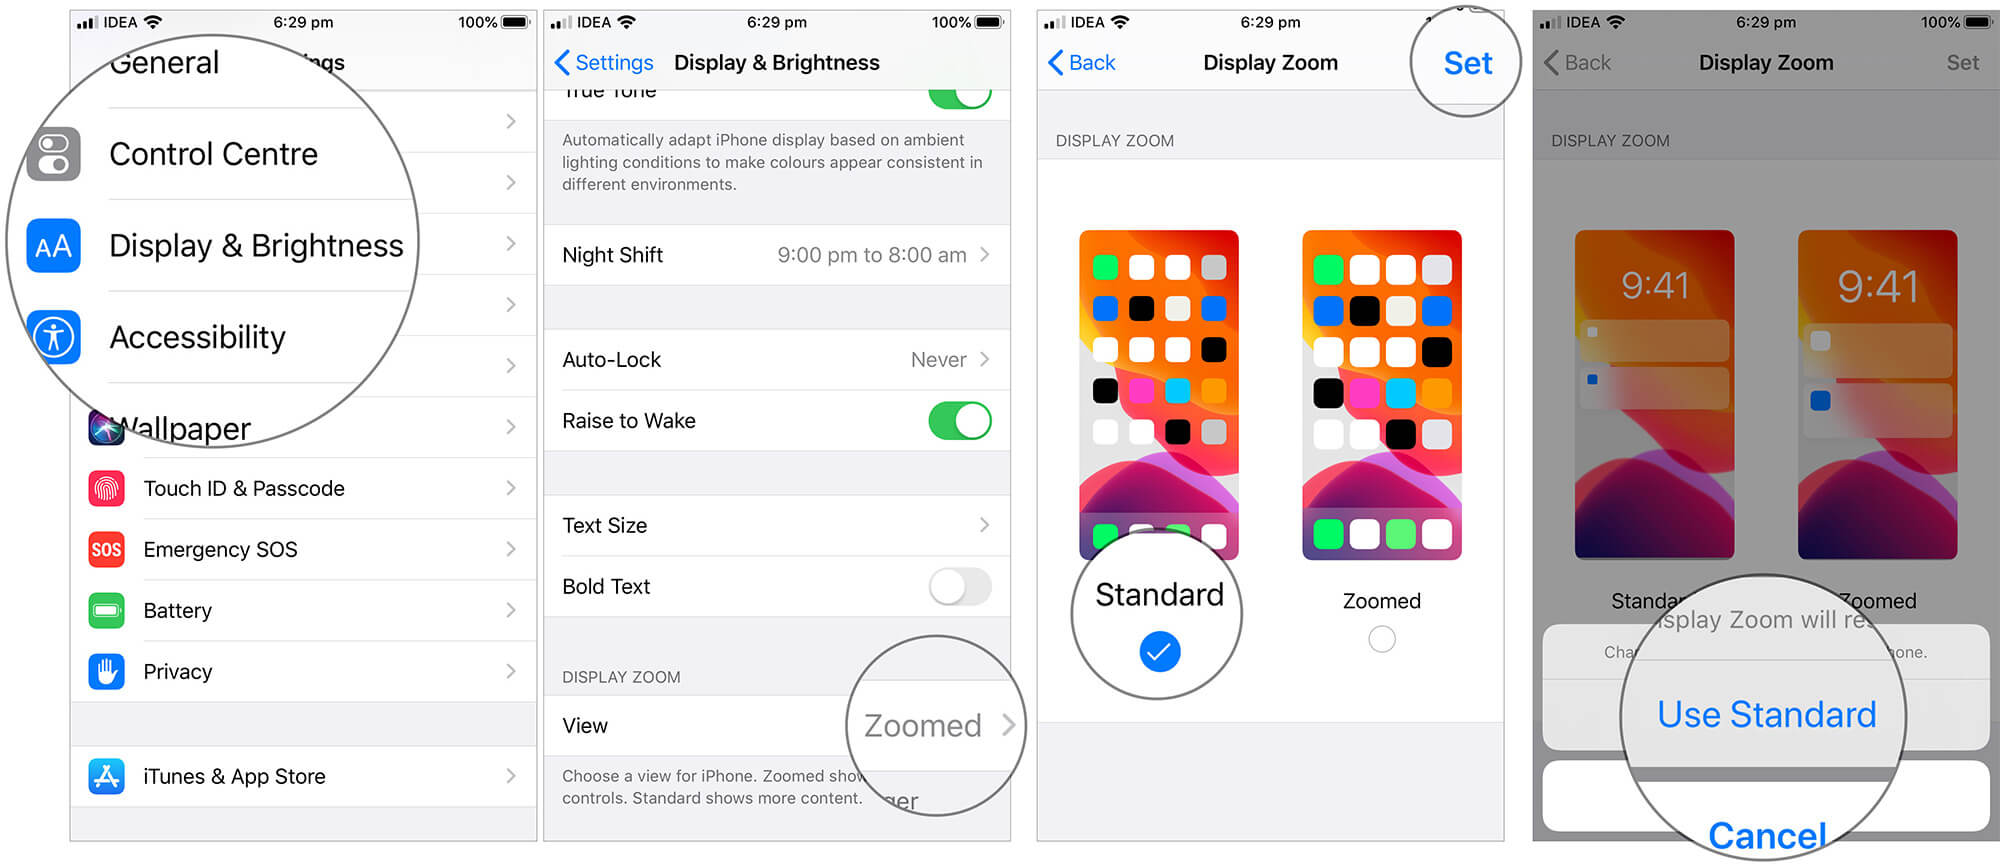 Use Standard option in Display Zoom for iPhone